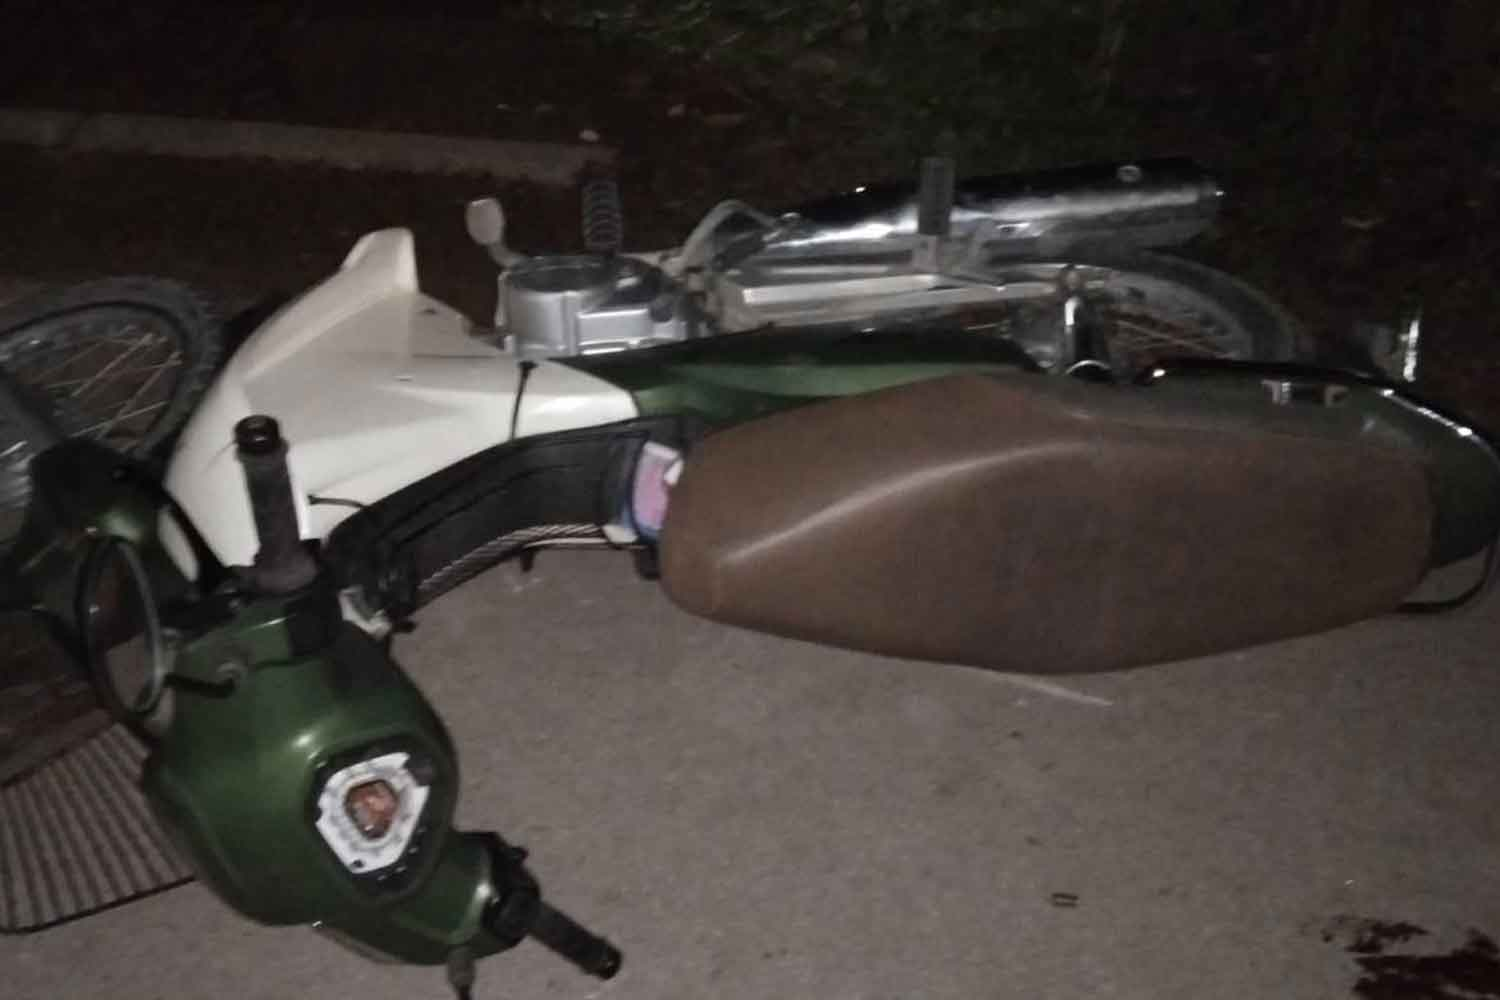 Asae Chema's motorcycle as left lying on the ground after he was shot and wounded from ambush, then rushd to hospital, in Narathiwat's Rueso district on Tuesday night. (Photo: Abdullah Benjakat)